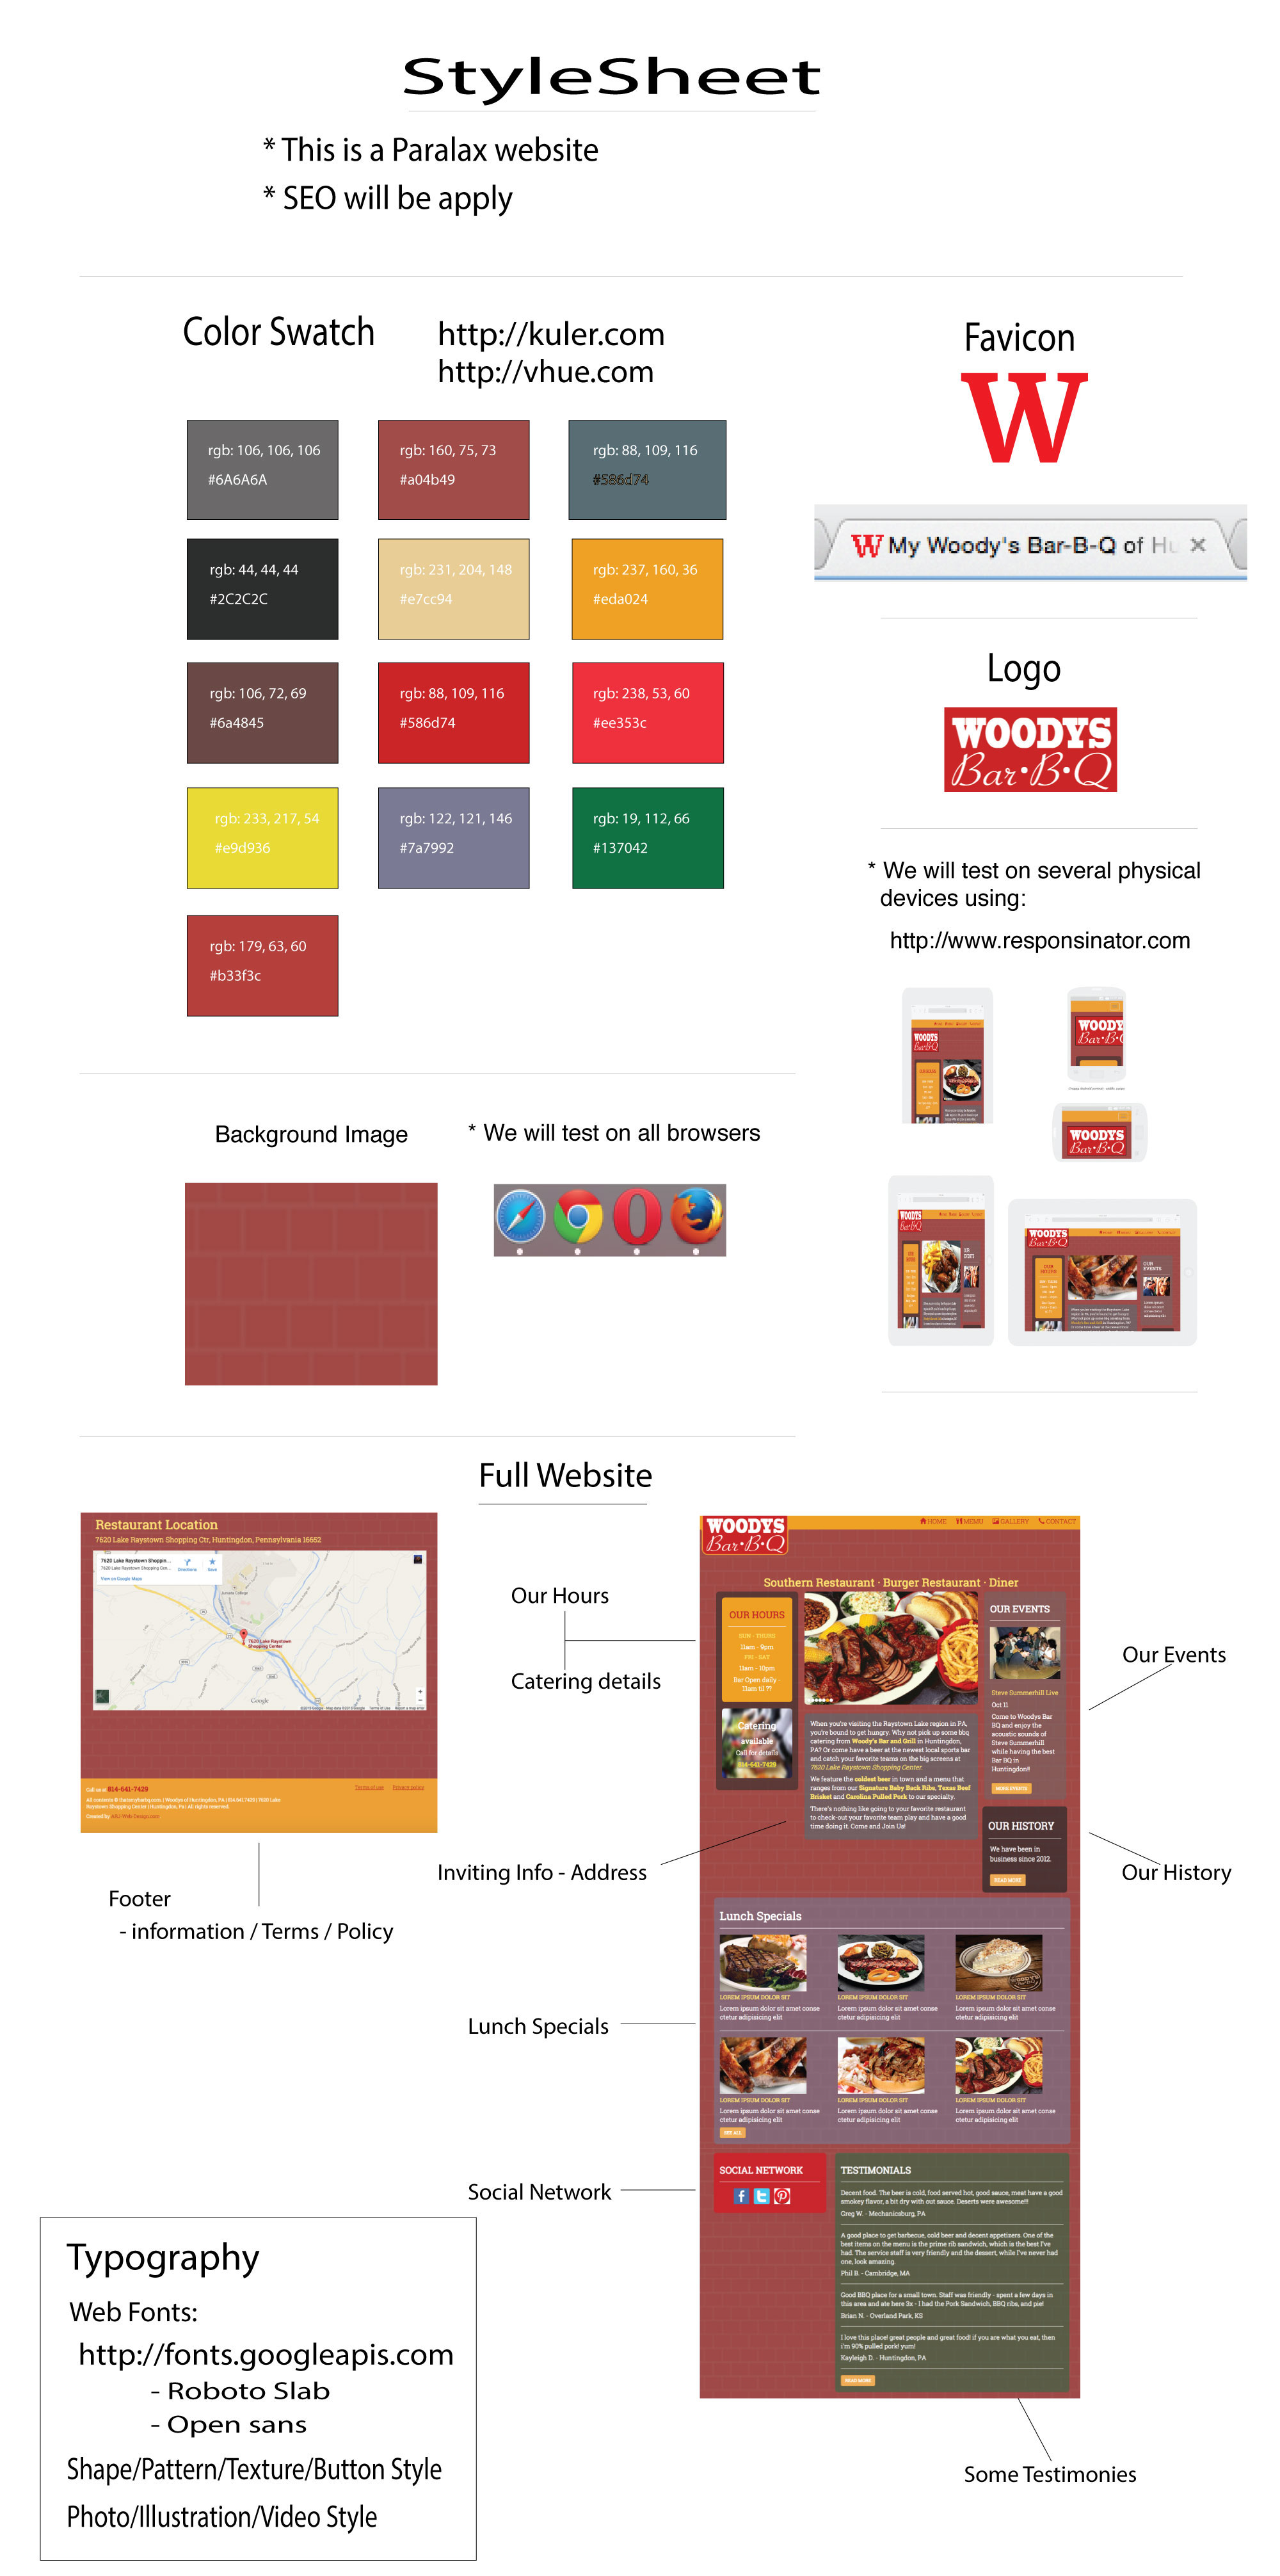 An image for Woodys workflow Stylesheets Part 1